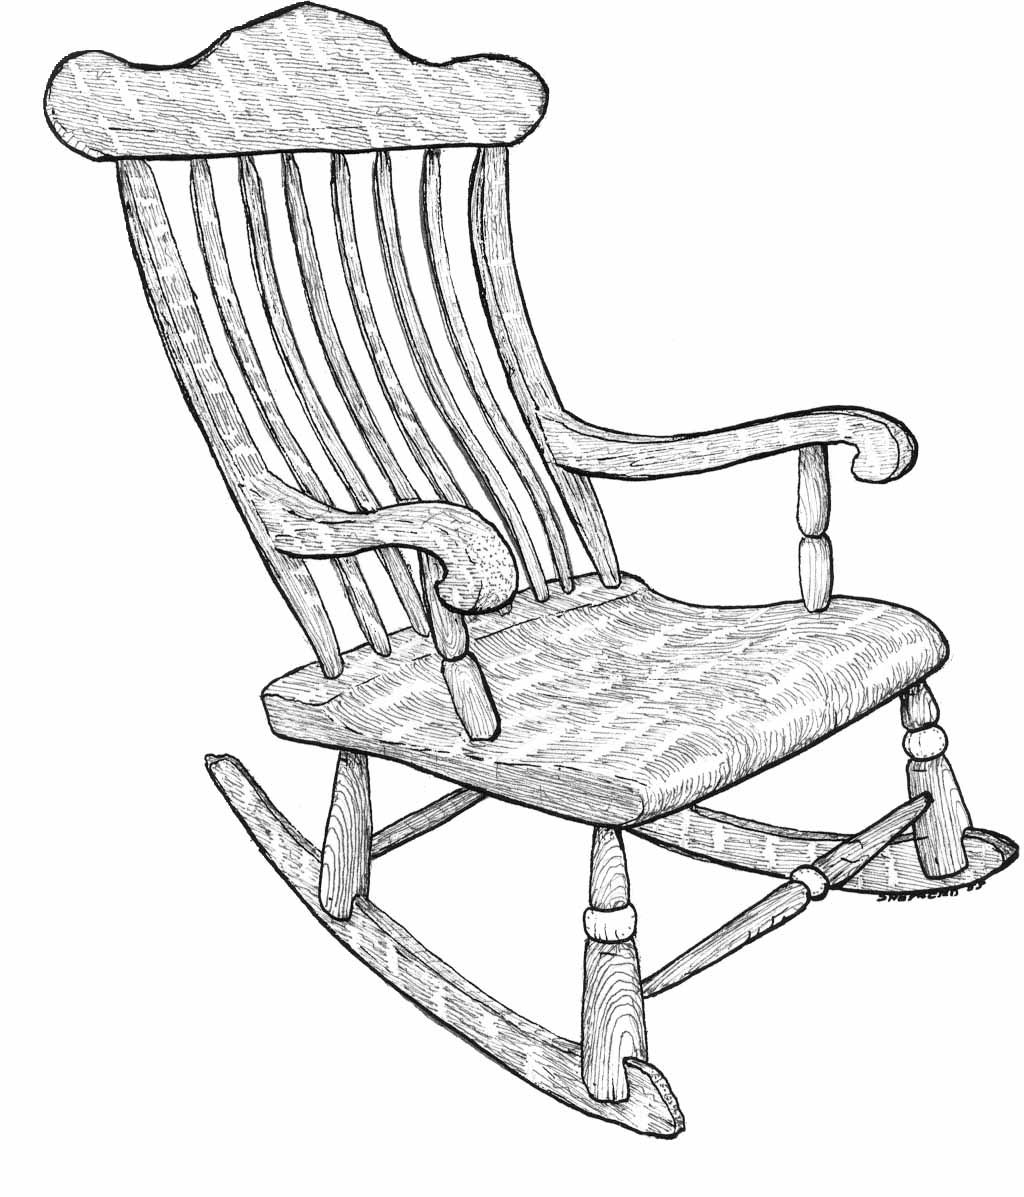 drawing of a chair royalty free traditional chair clip art vector images of a drawing chair